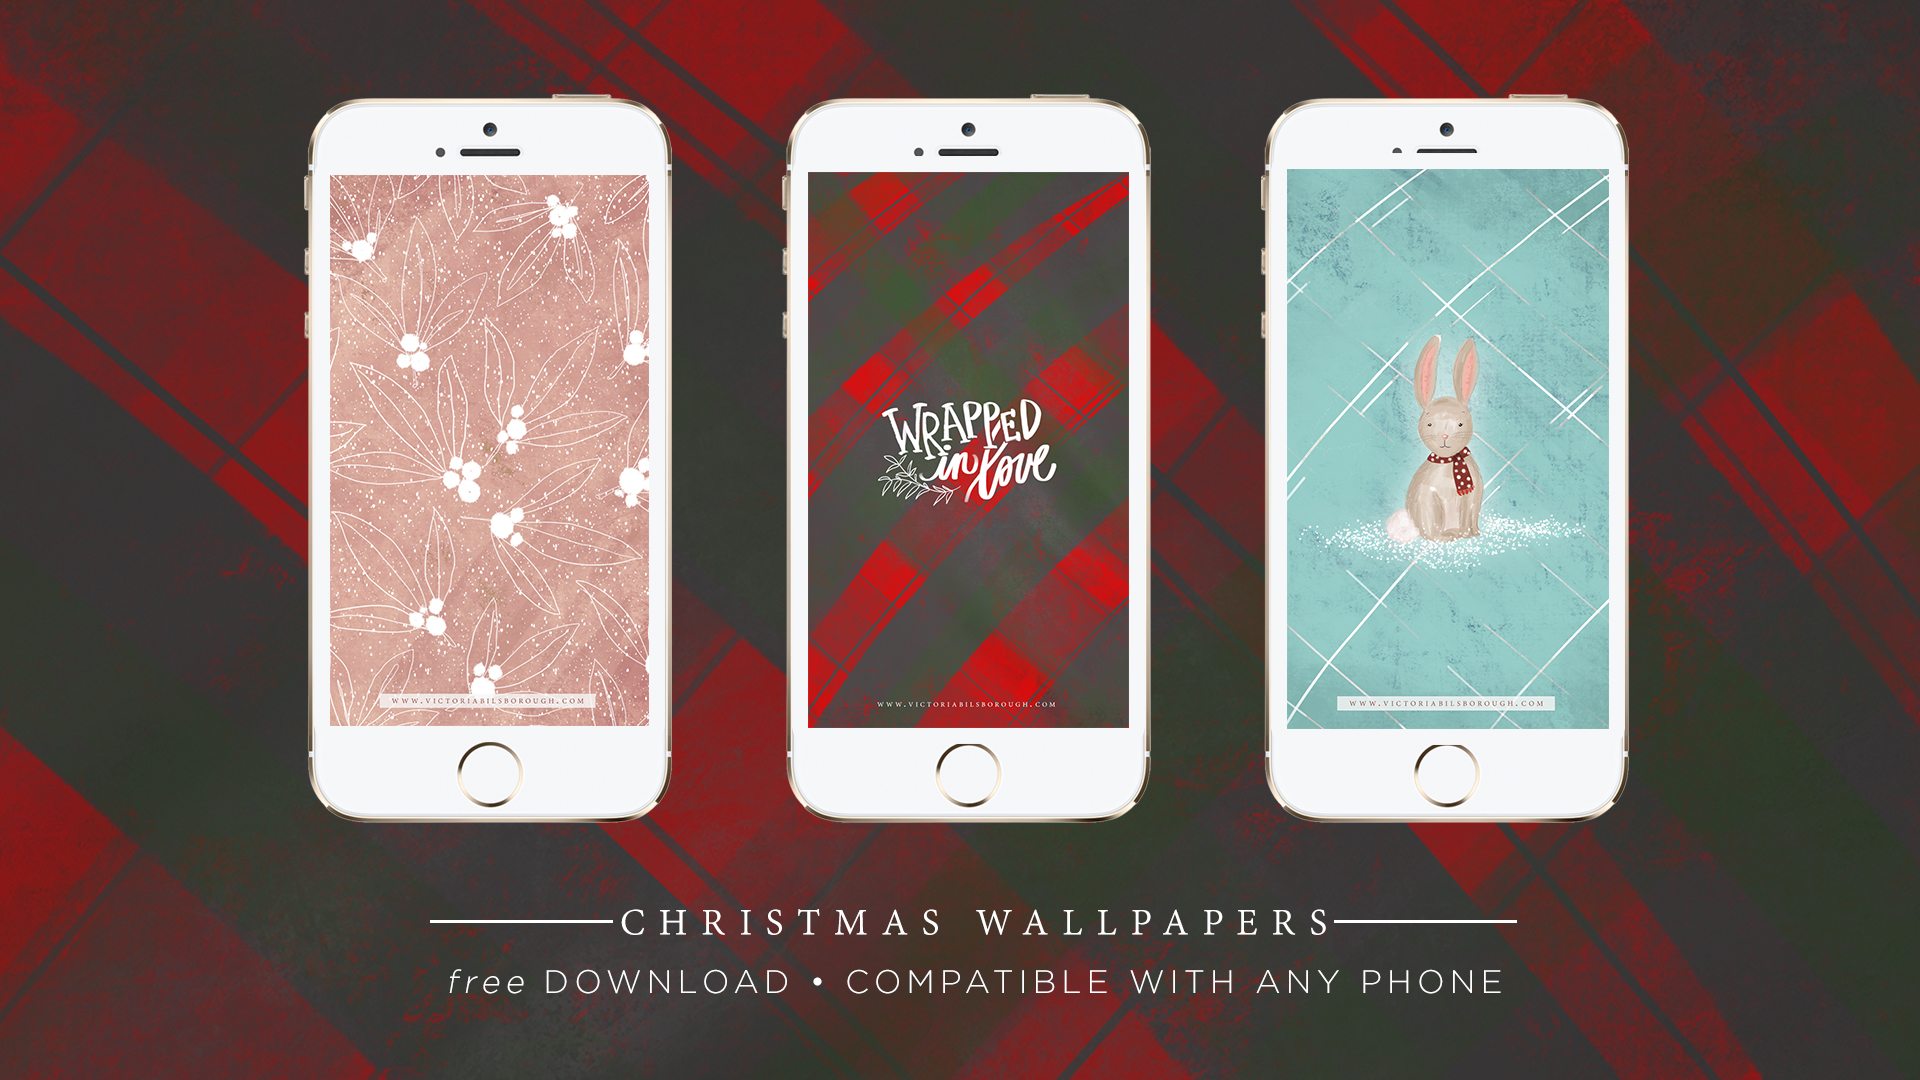 Free Christmas Wallpapers for your phone/laptop/iPad || Click here to download.